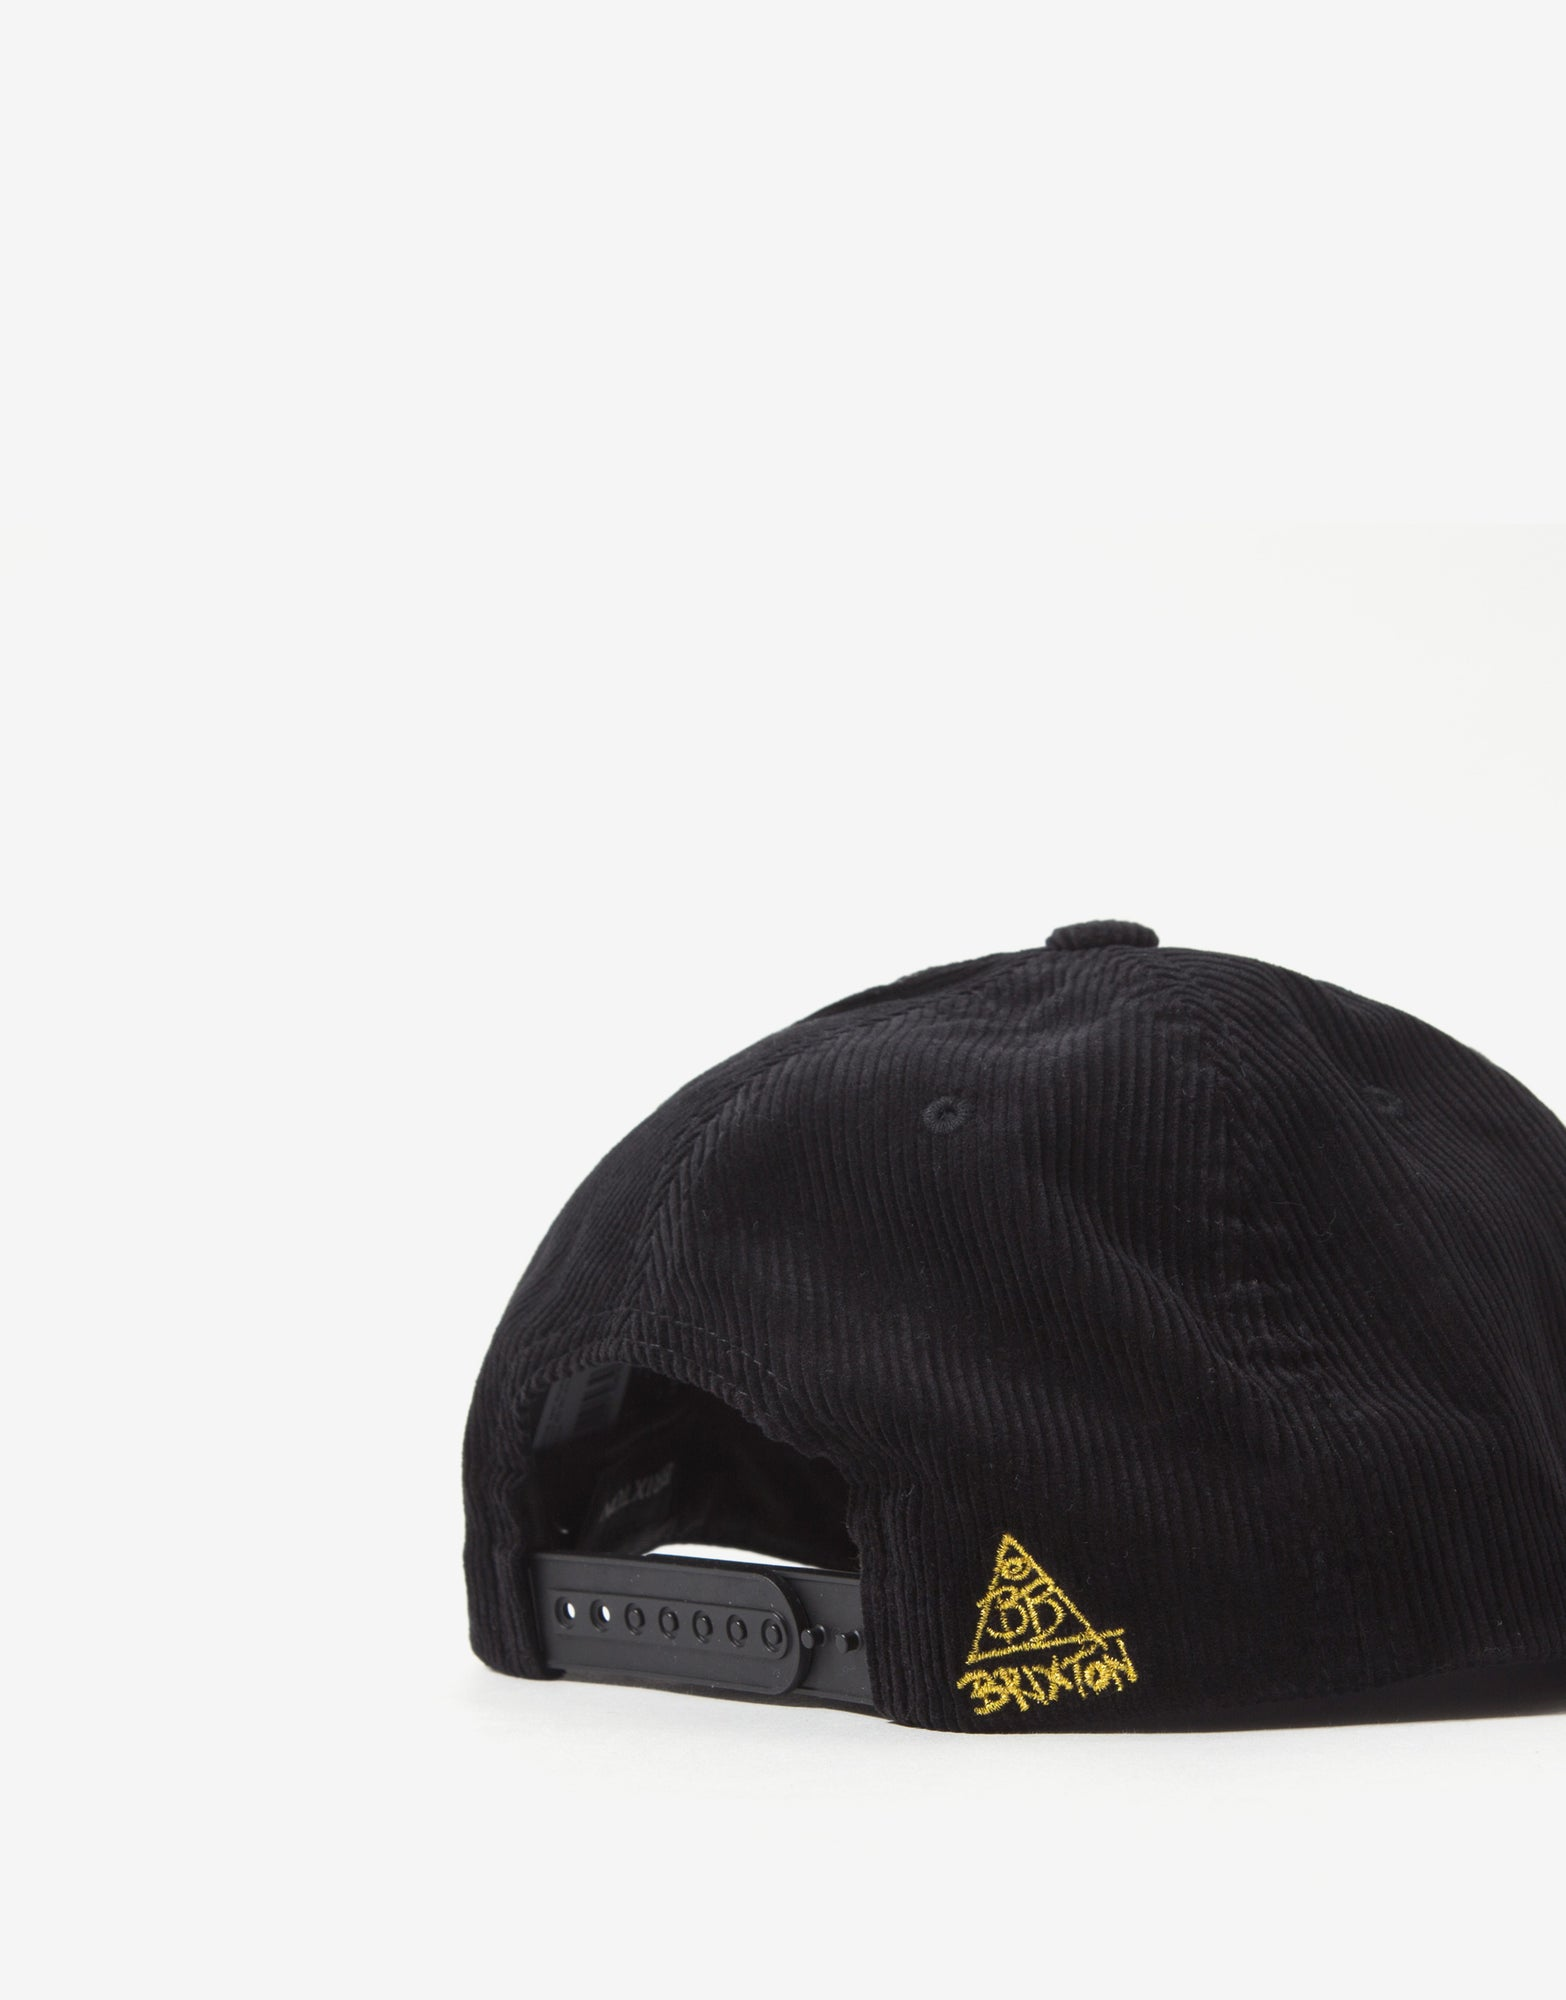 Brixton BB Mode MP Snapback - Black